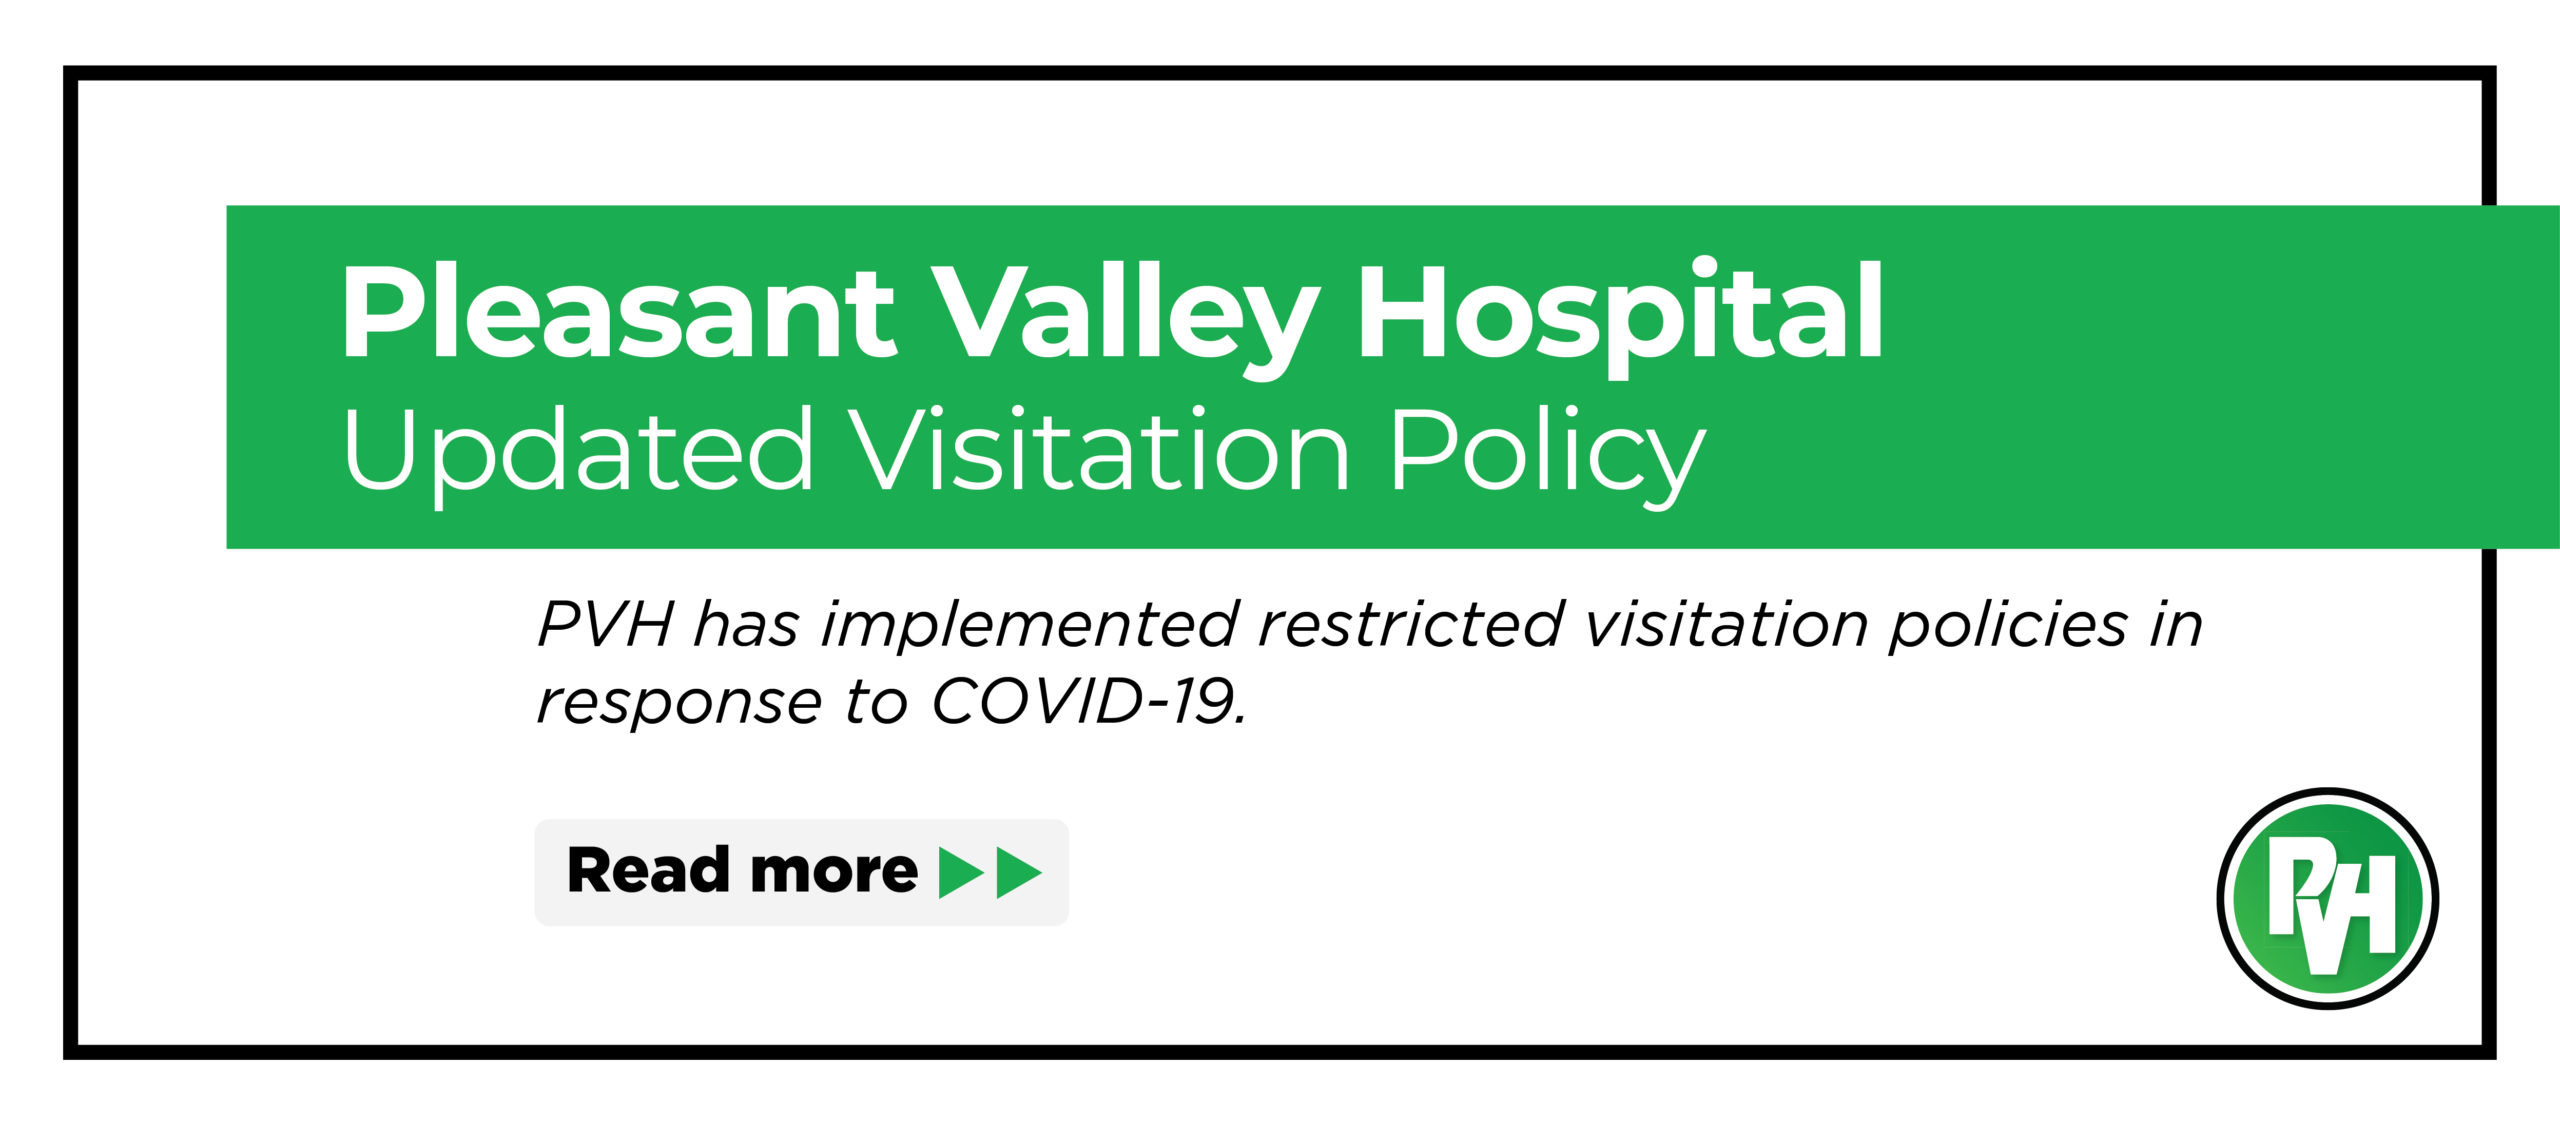 Pleasant Valley Hospital Updated Visitation Policy PVH has implemented restricted visitation policies in response to COVID-19. Read more